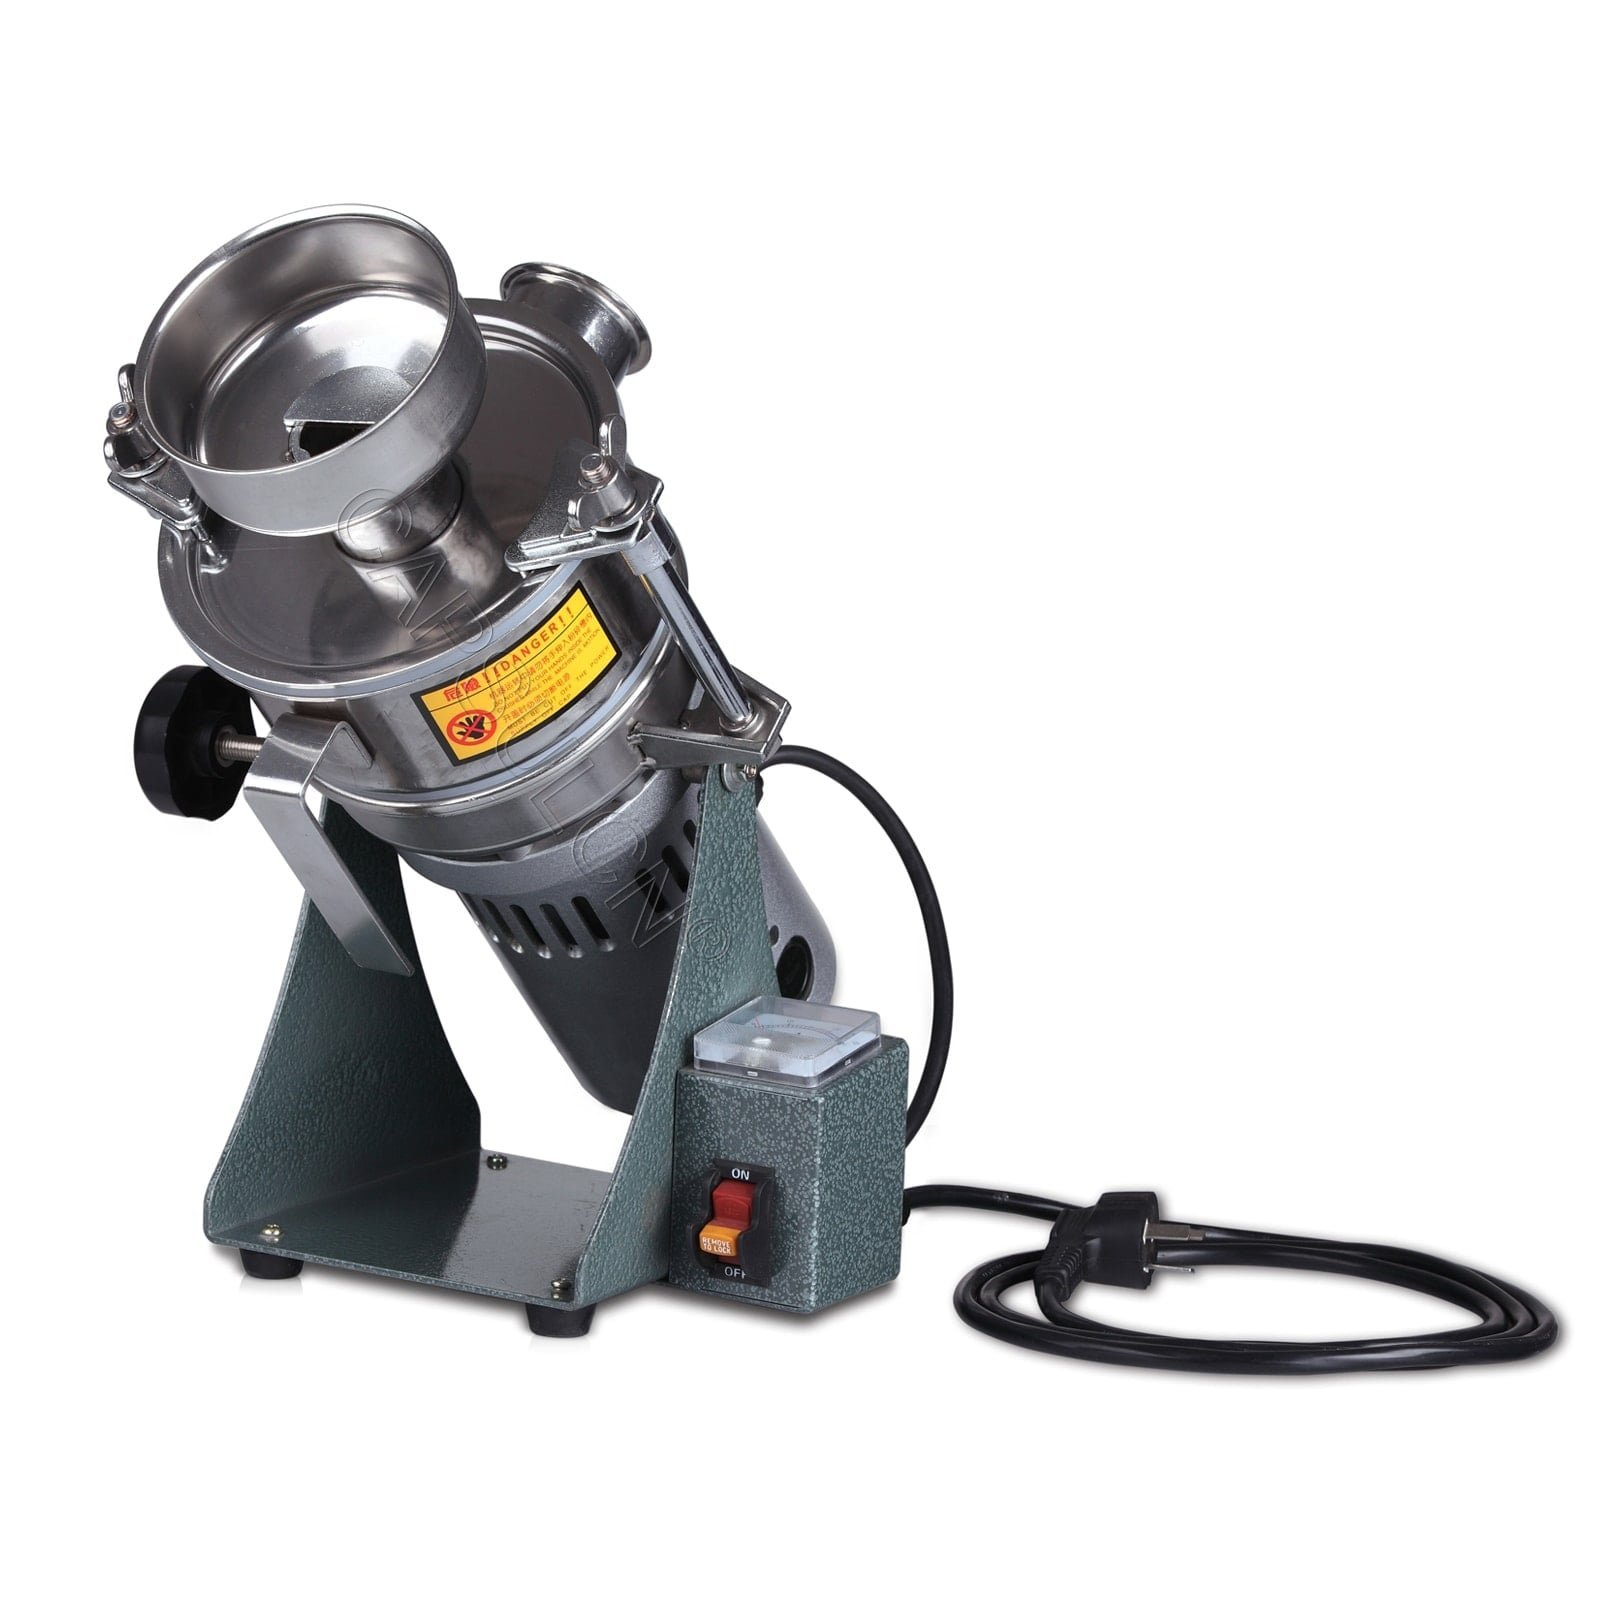 Super Fine Automatic Continuous Feed Powder Grinder YF2-1 220V